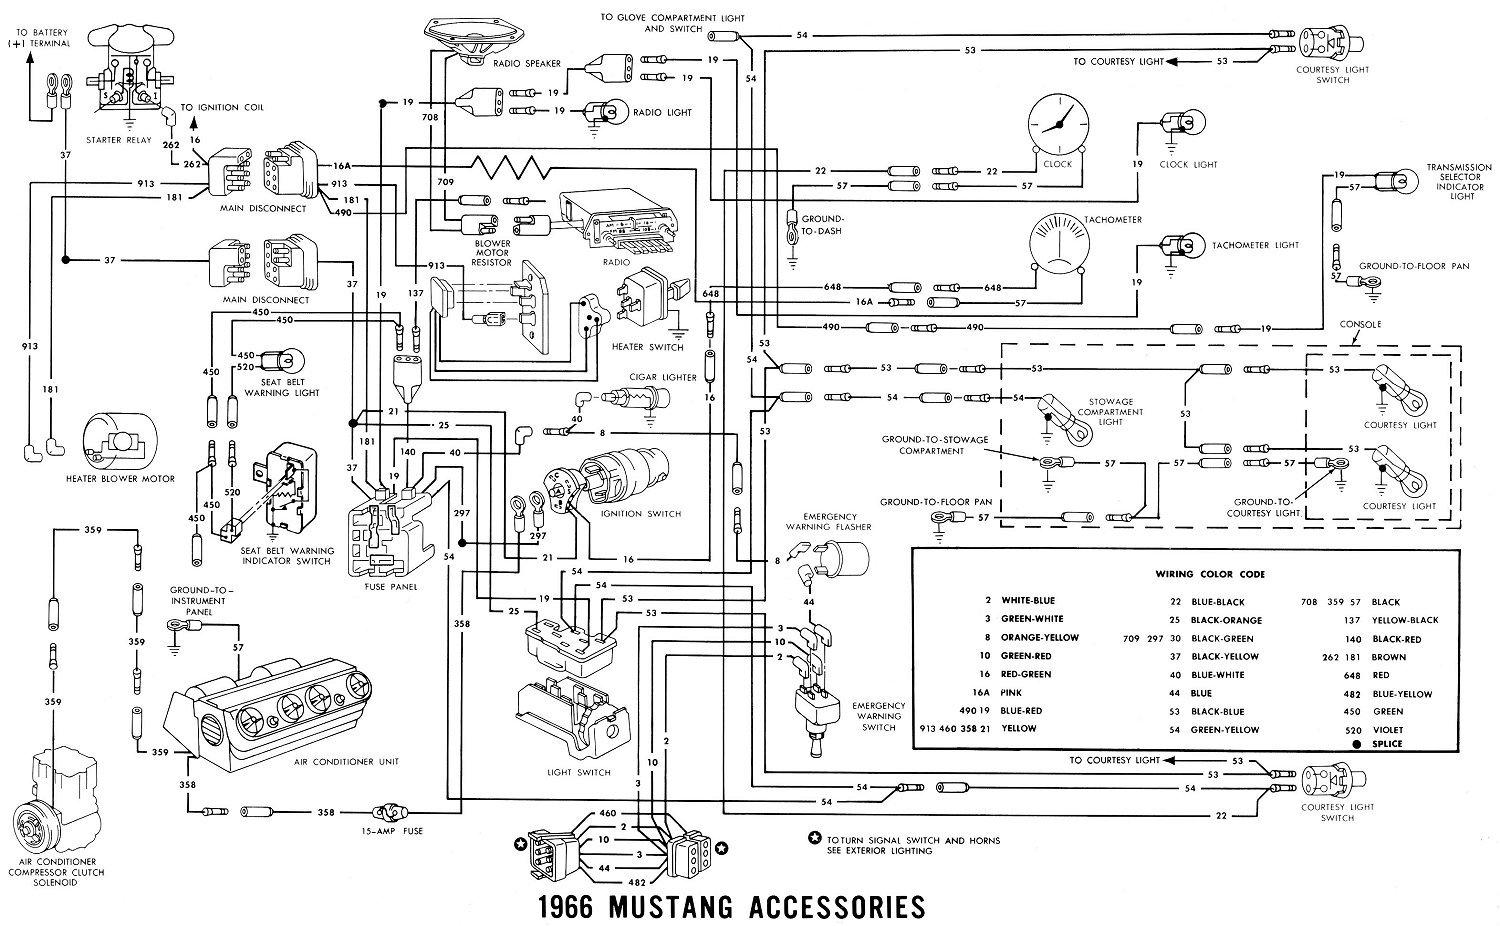 66acces1 vintage mustang wiring diagrams 1966 mustang ignition switch wiring diagram at n-0.co